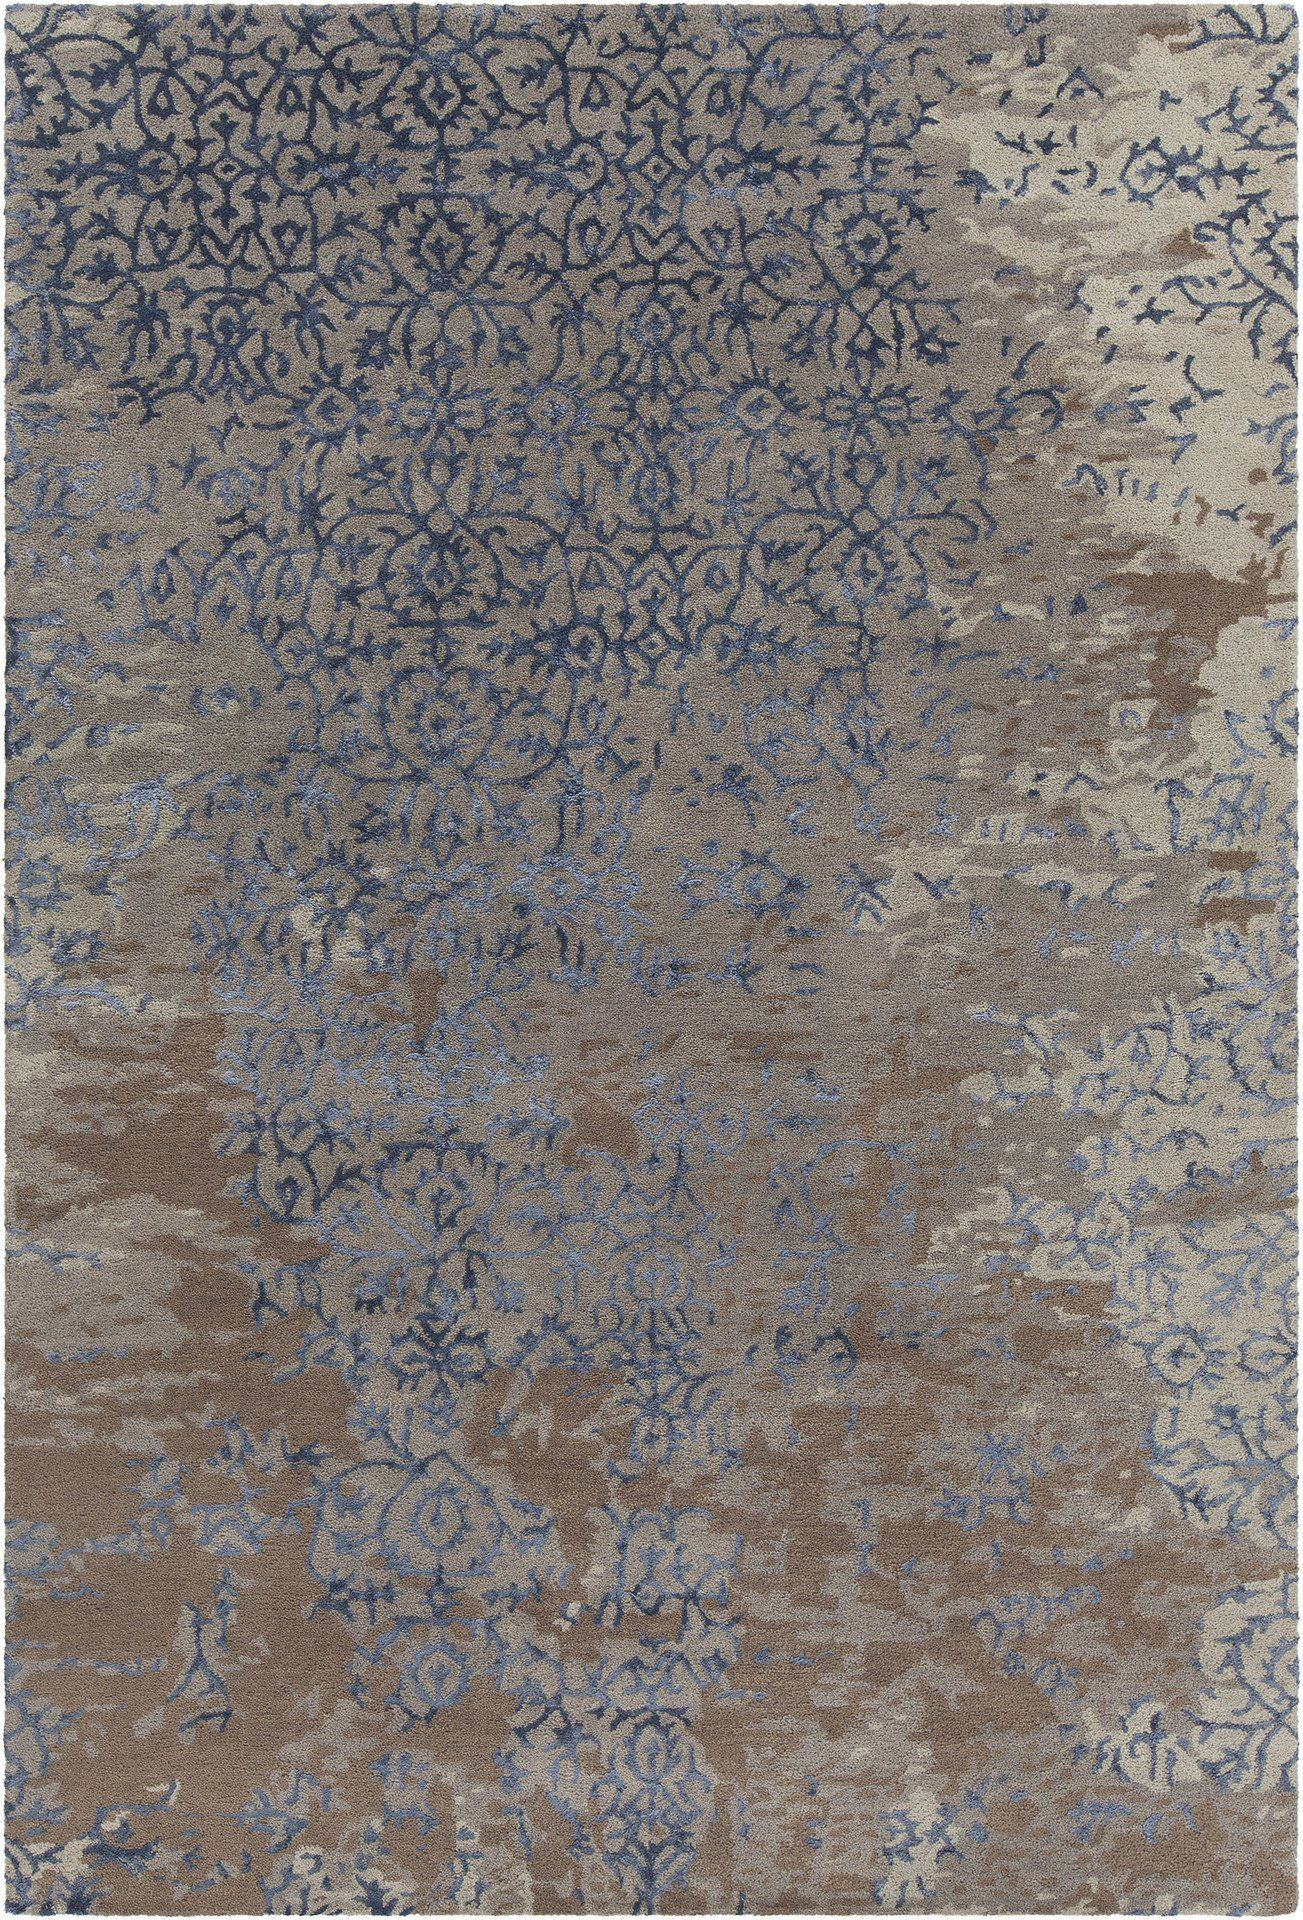 Rupec Collection Hand Tufted Area Rug In Grey Blue Brown